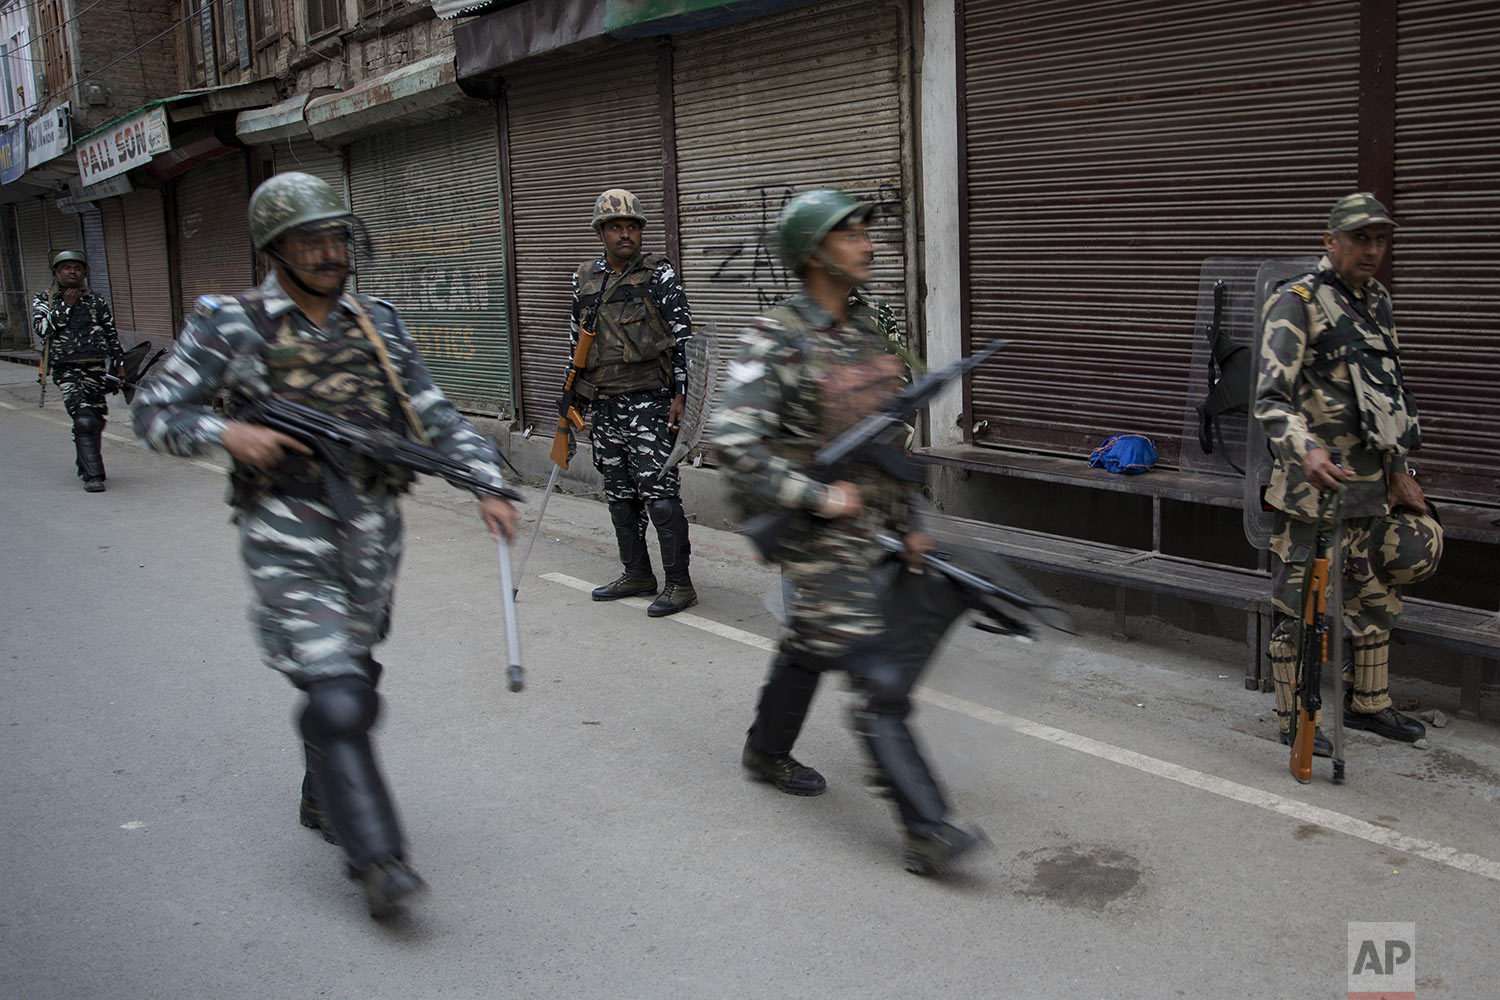 Indian Paramilitary soldiers patrol during curfew in Srinagar, Indian controlled Kashmir, Friday, Aug. 9, 2019. (AP Photo/ Dar Yasin)